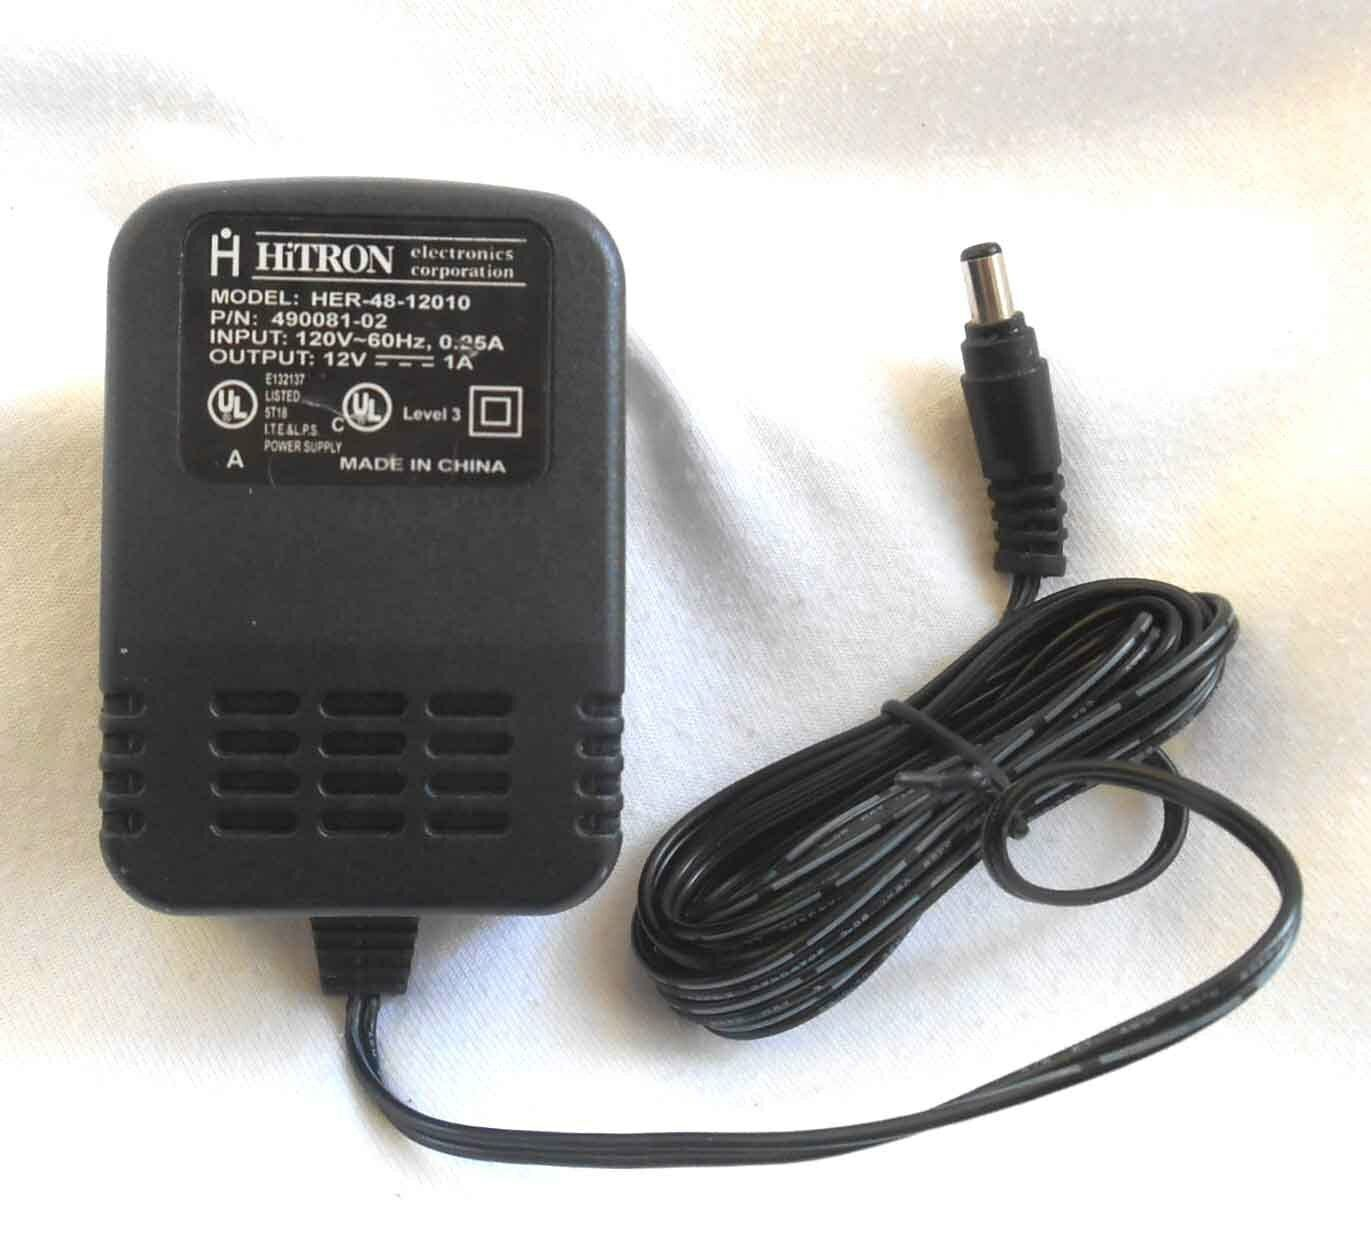 Brand New Hitron Output 12v 75a Her 48 12010 490081 02 Class 2 Transformer Ac Dc Power Adapter Fr Power Adapter Acdc Adapter